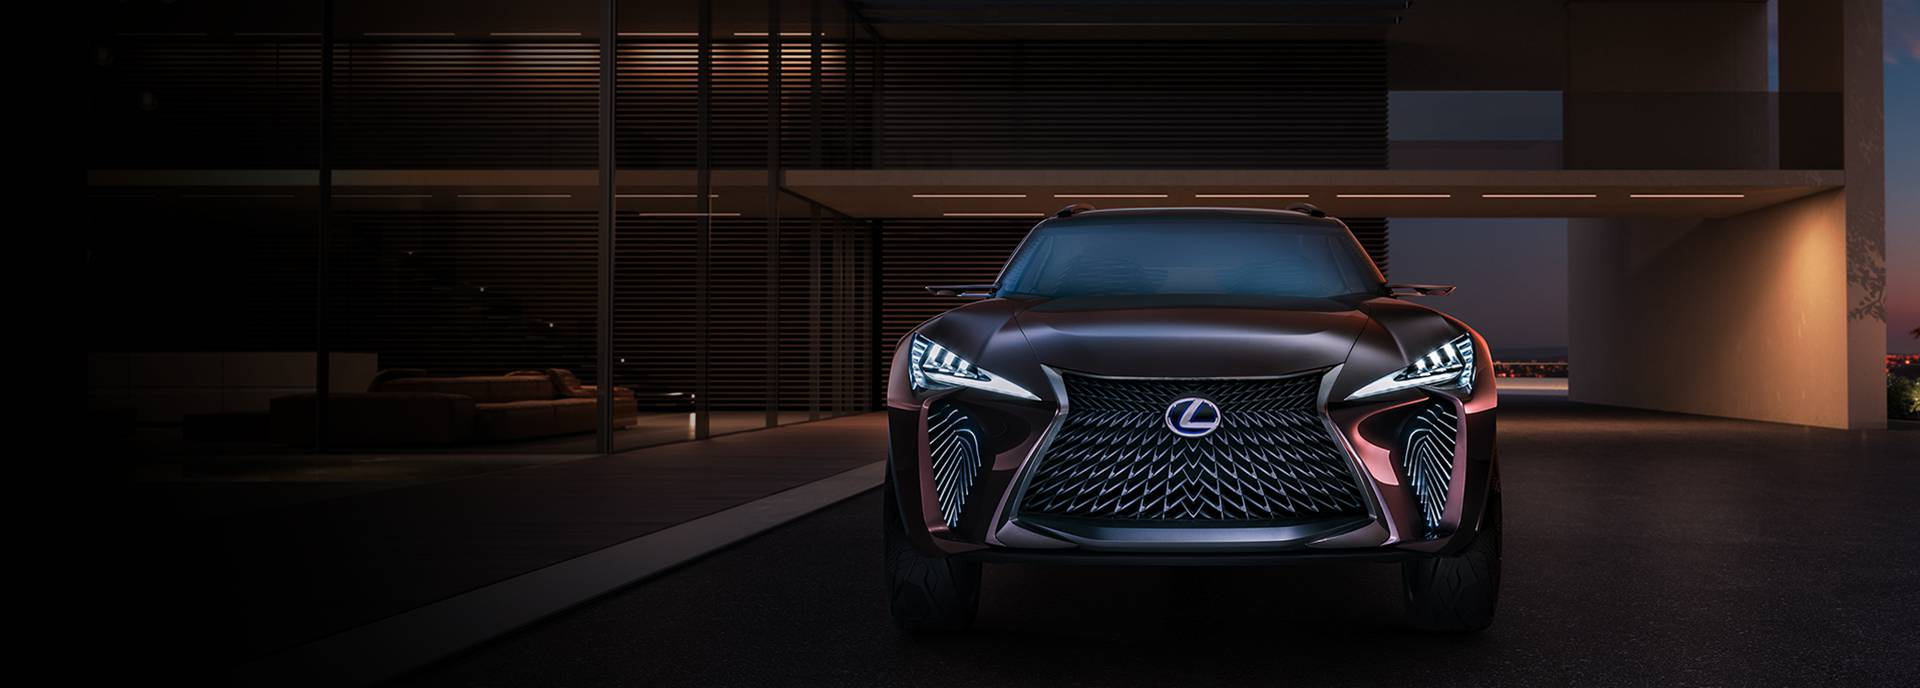 2016 lexus ux paris hero